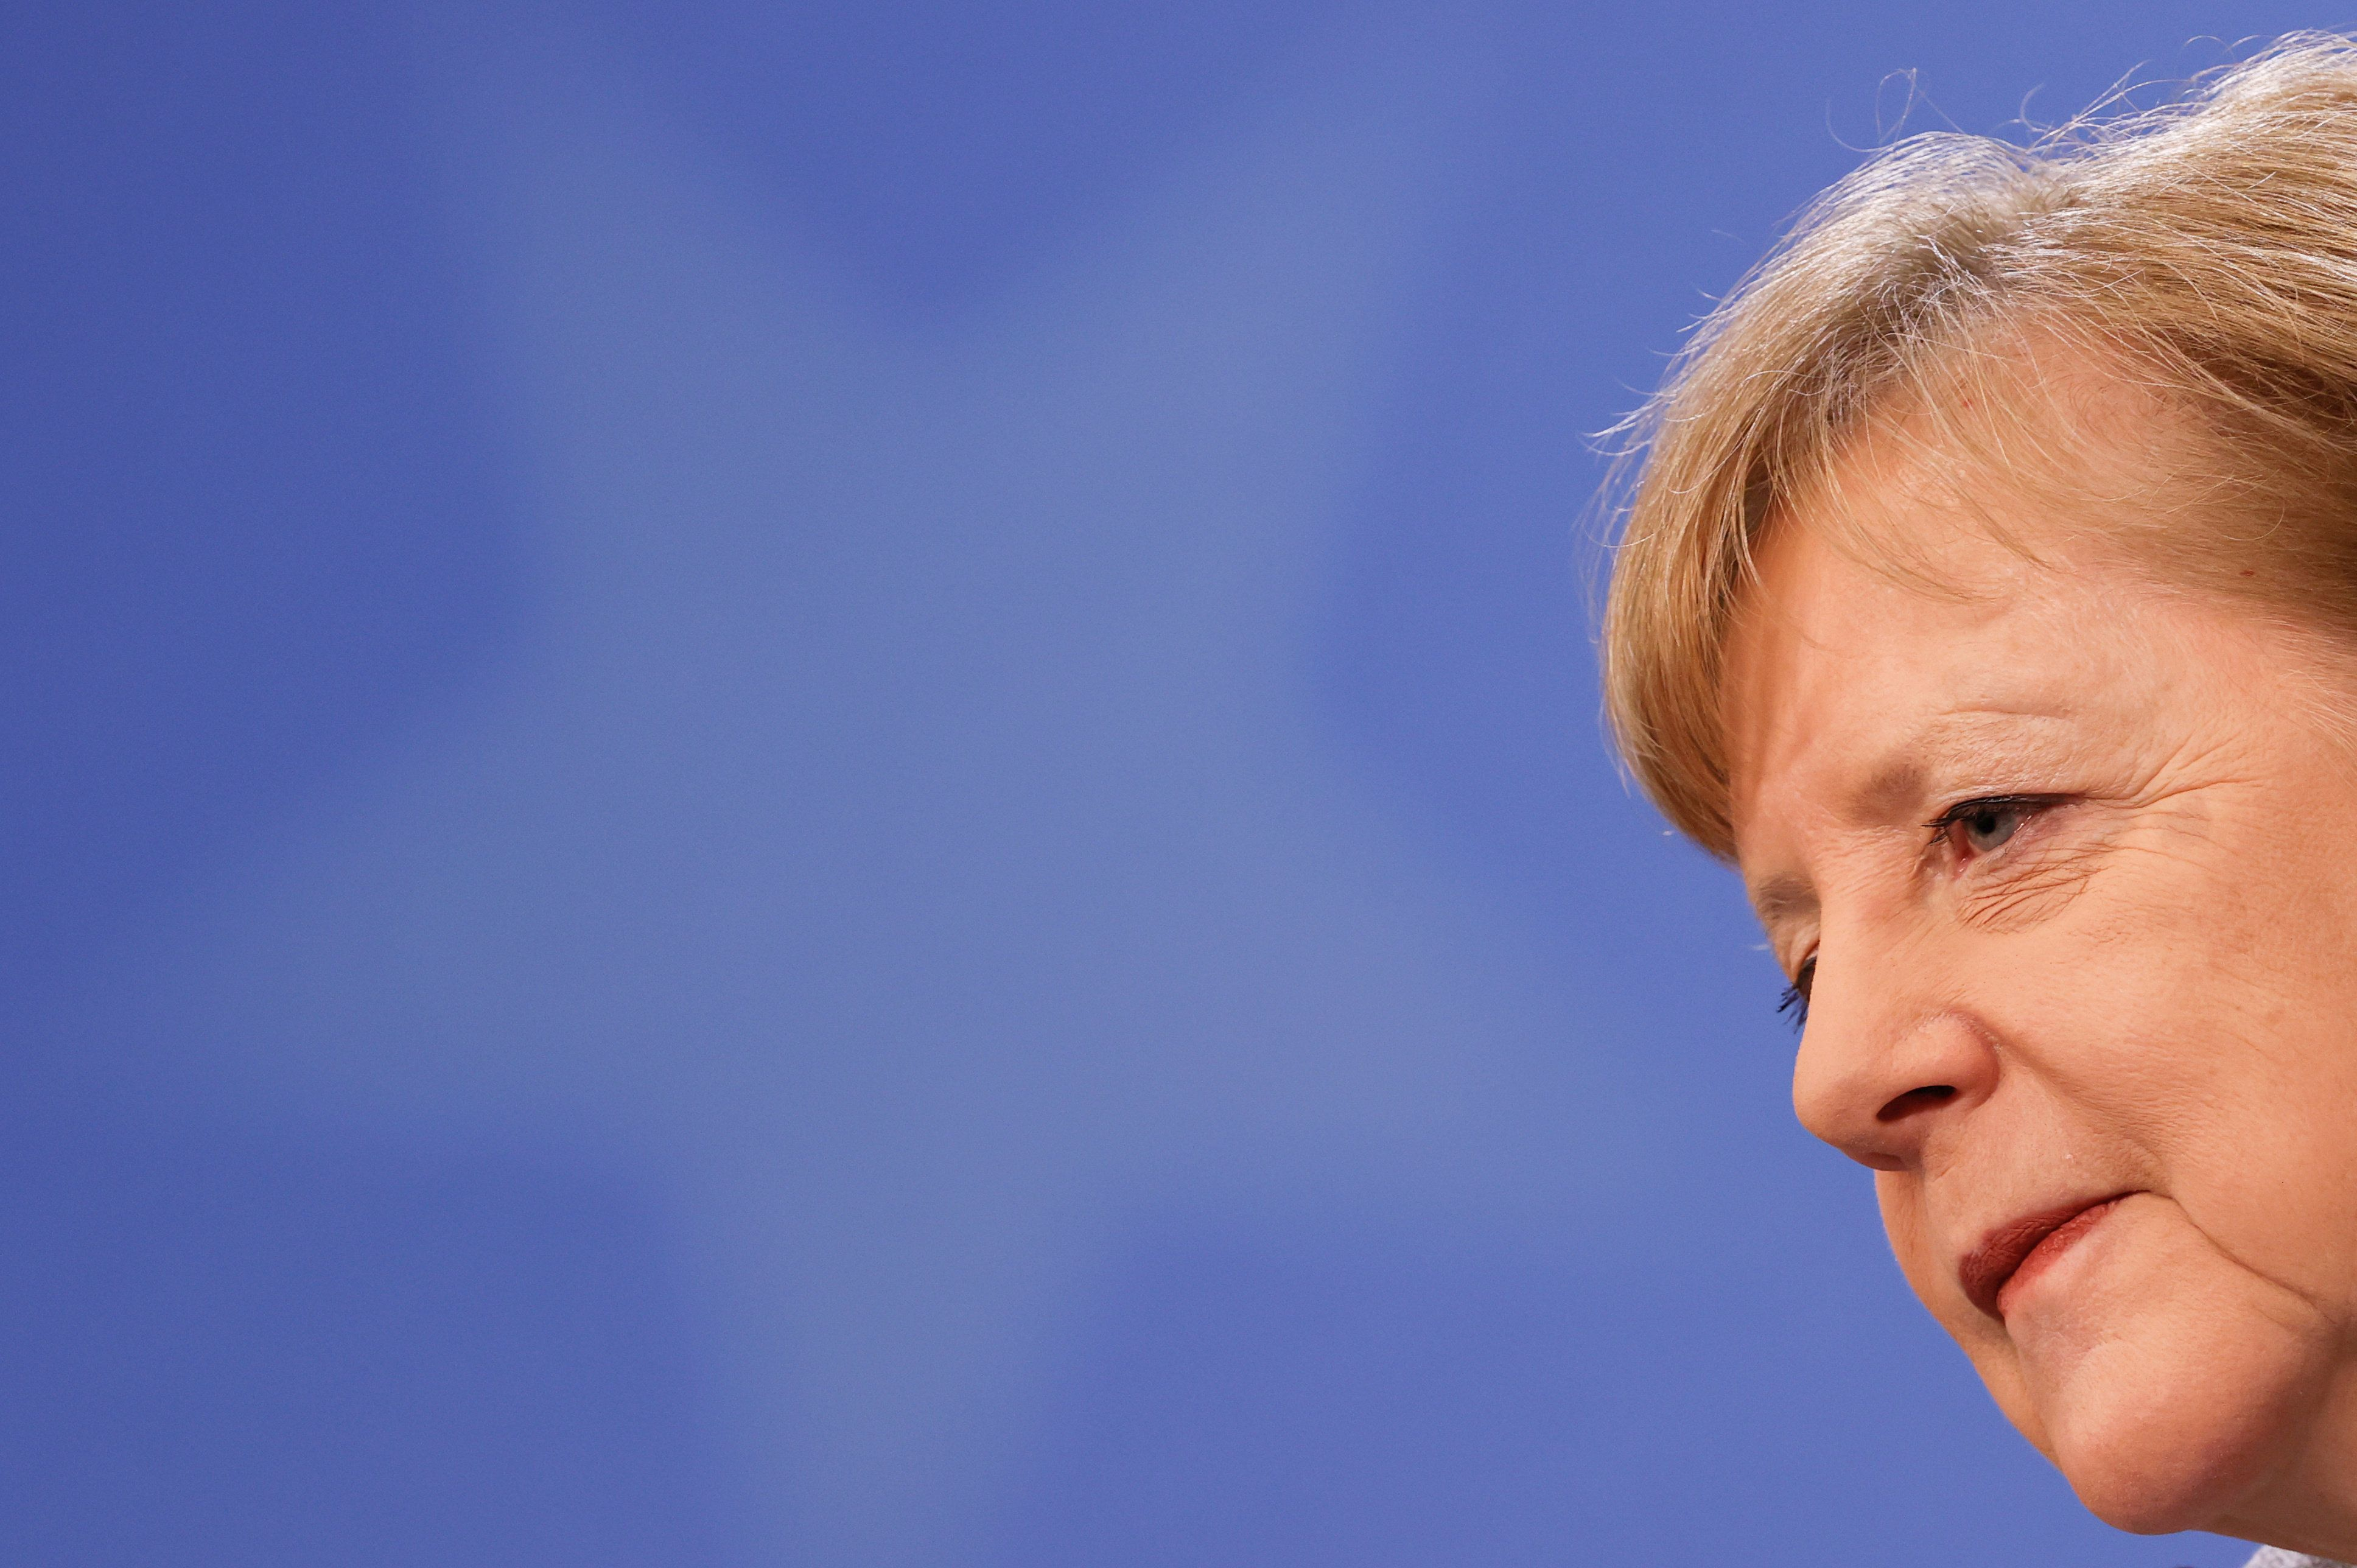 What We're Watching: Merkel's emergency, South Sudan's hopes, and the Mecca Girls